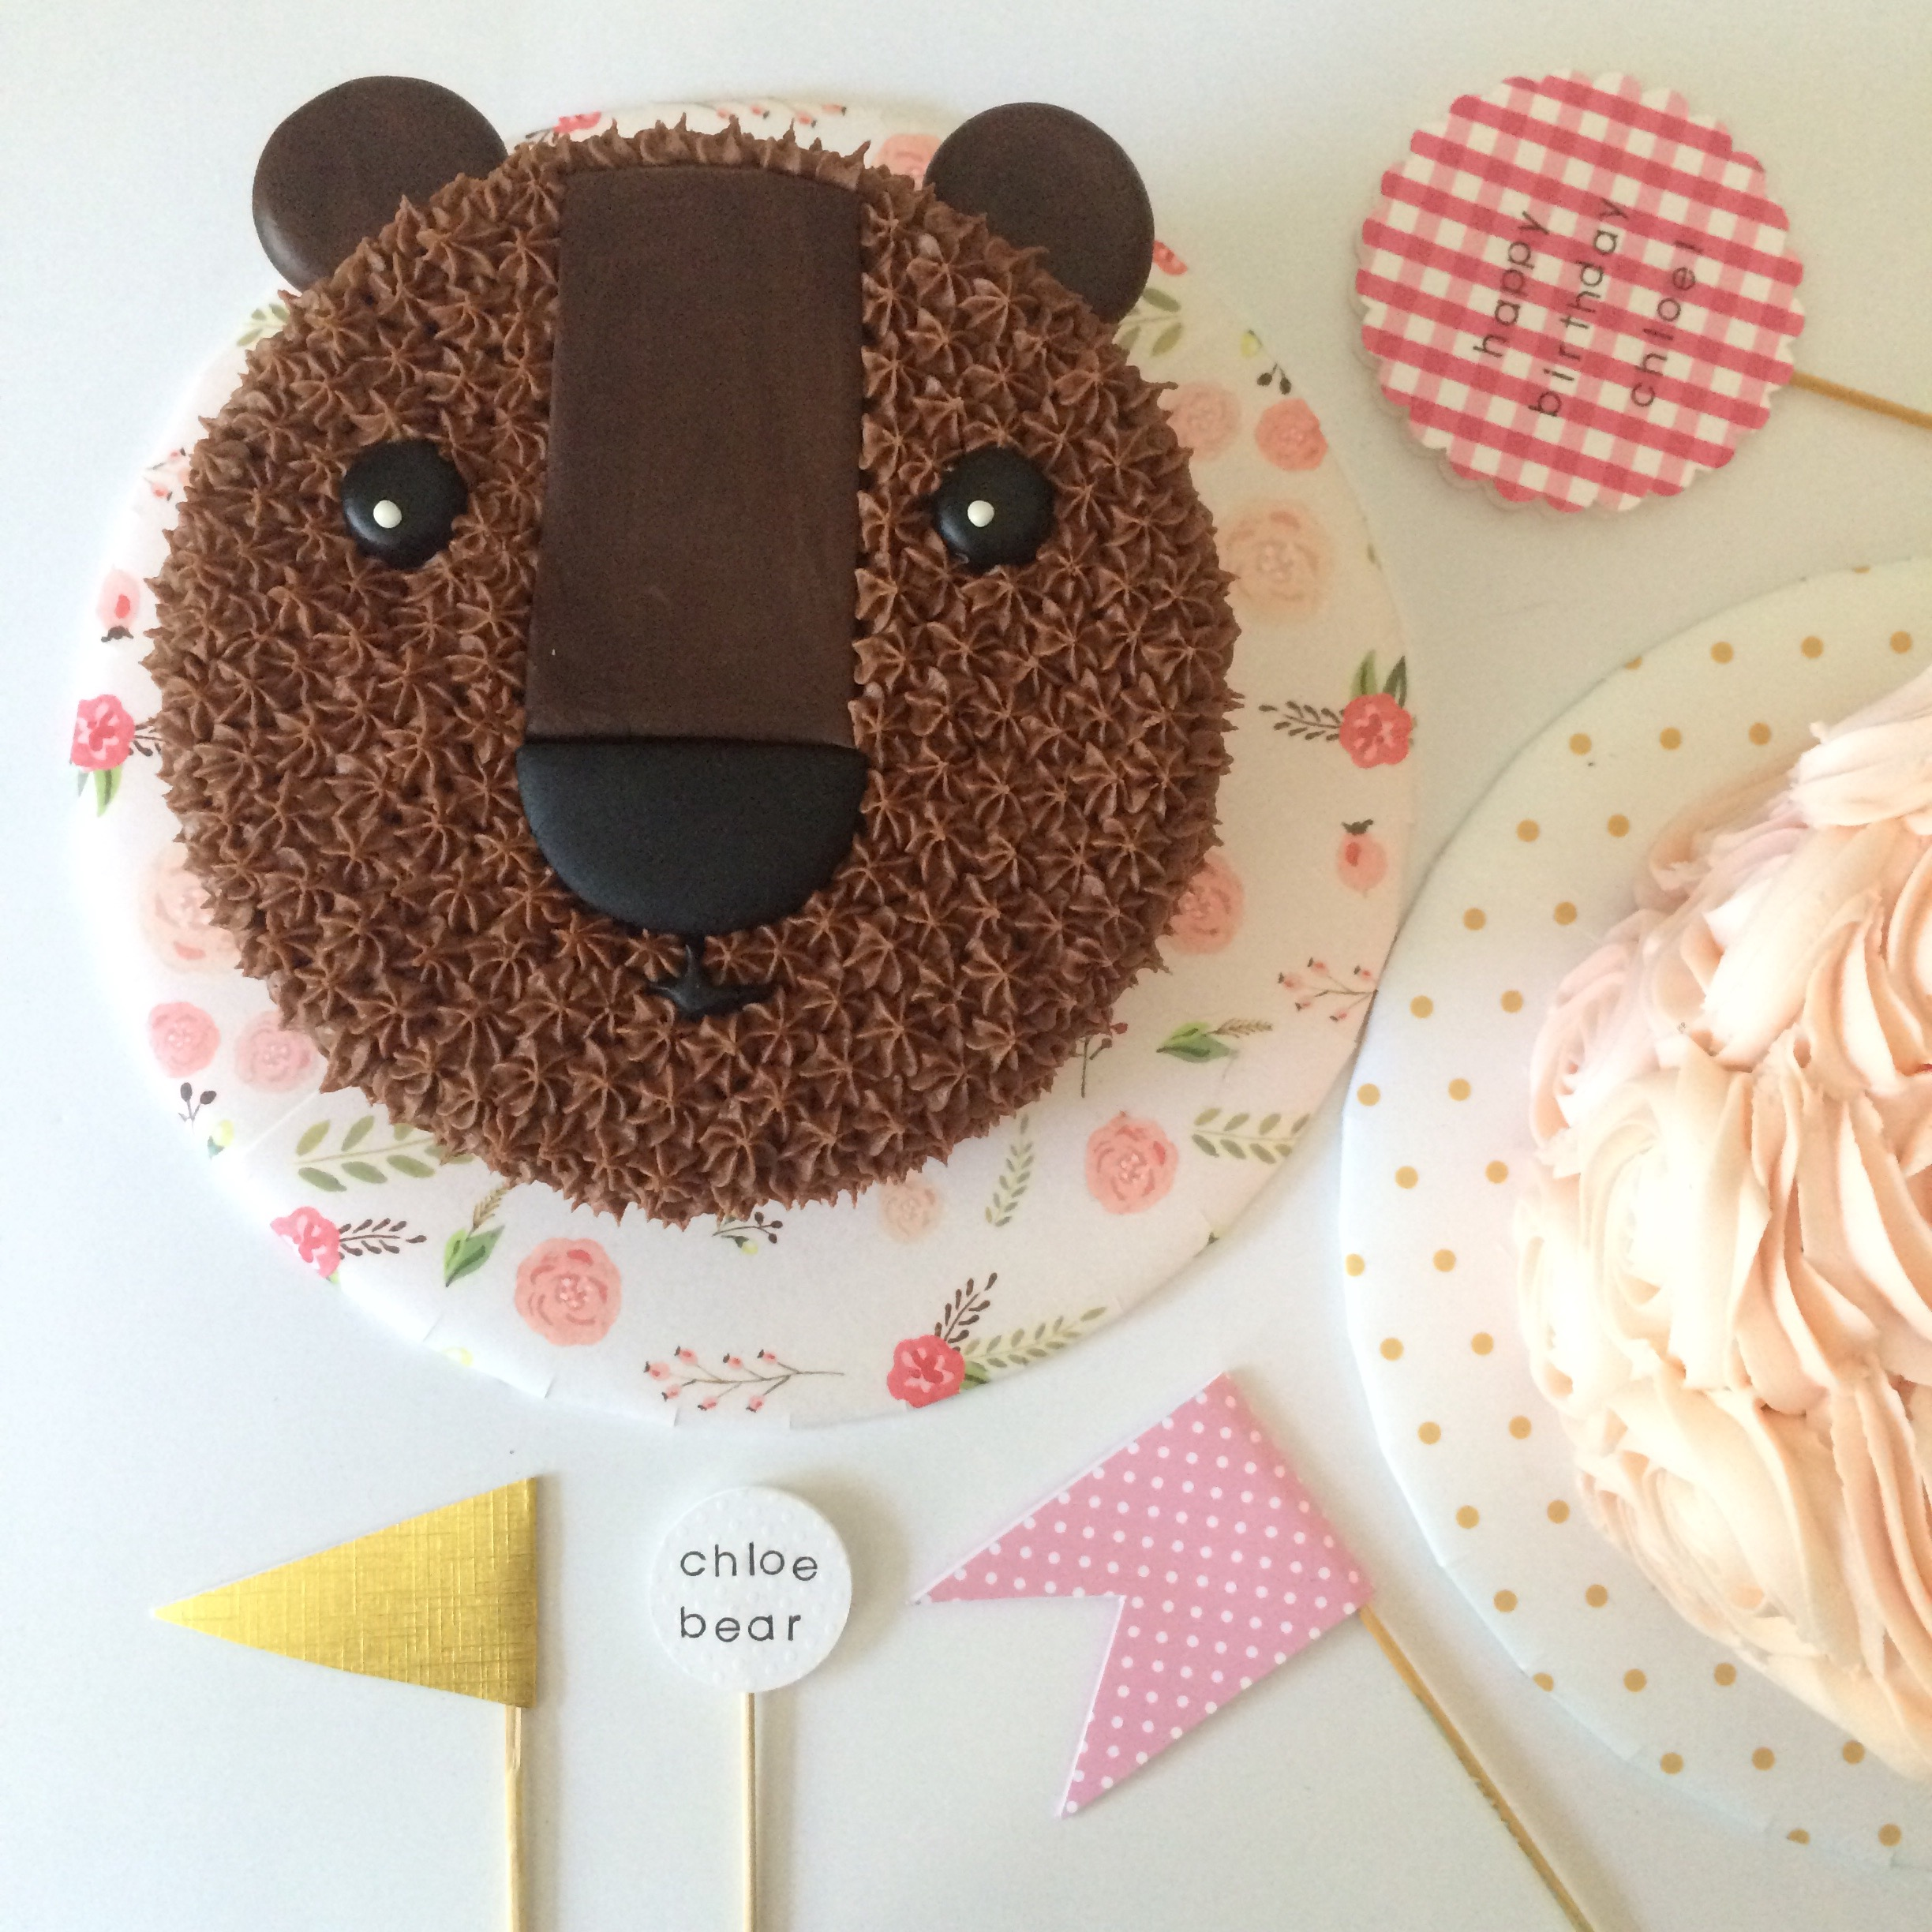 bear cake and rose cake